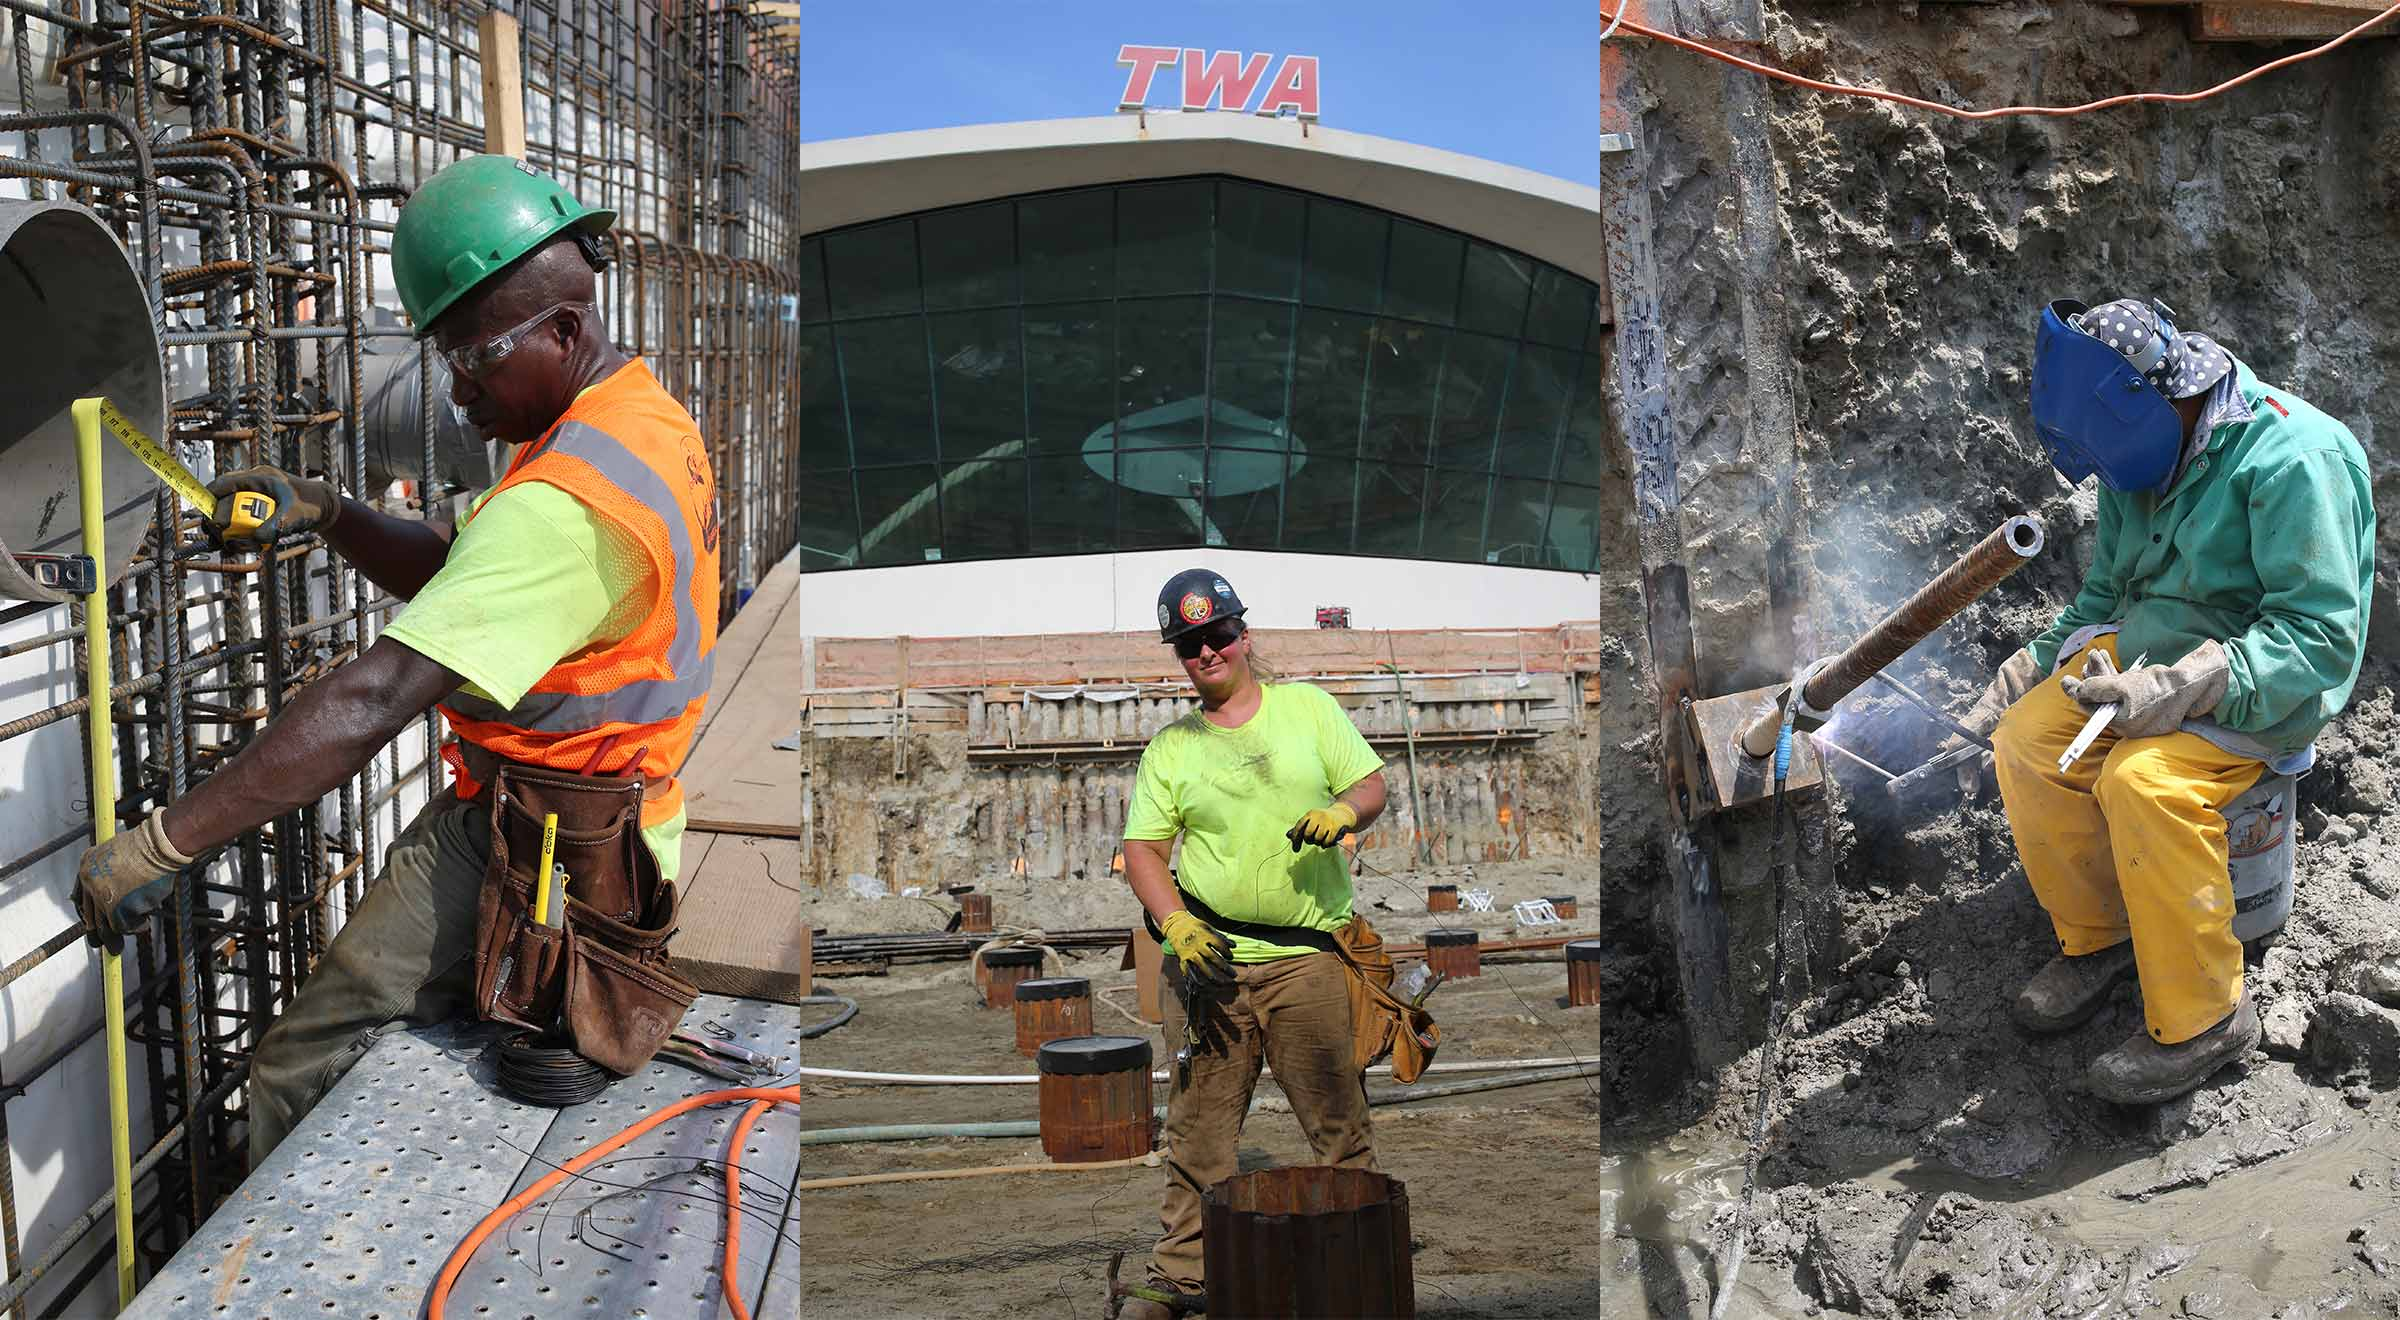 TWA Hotel Construction Team